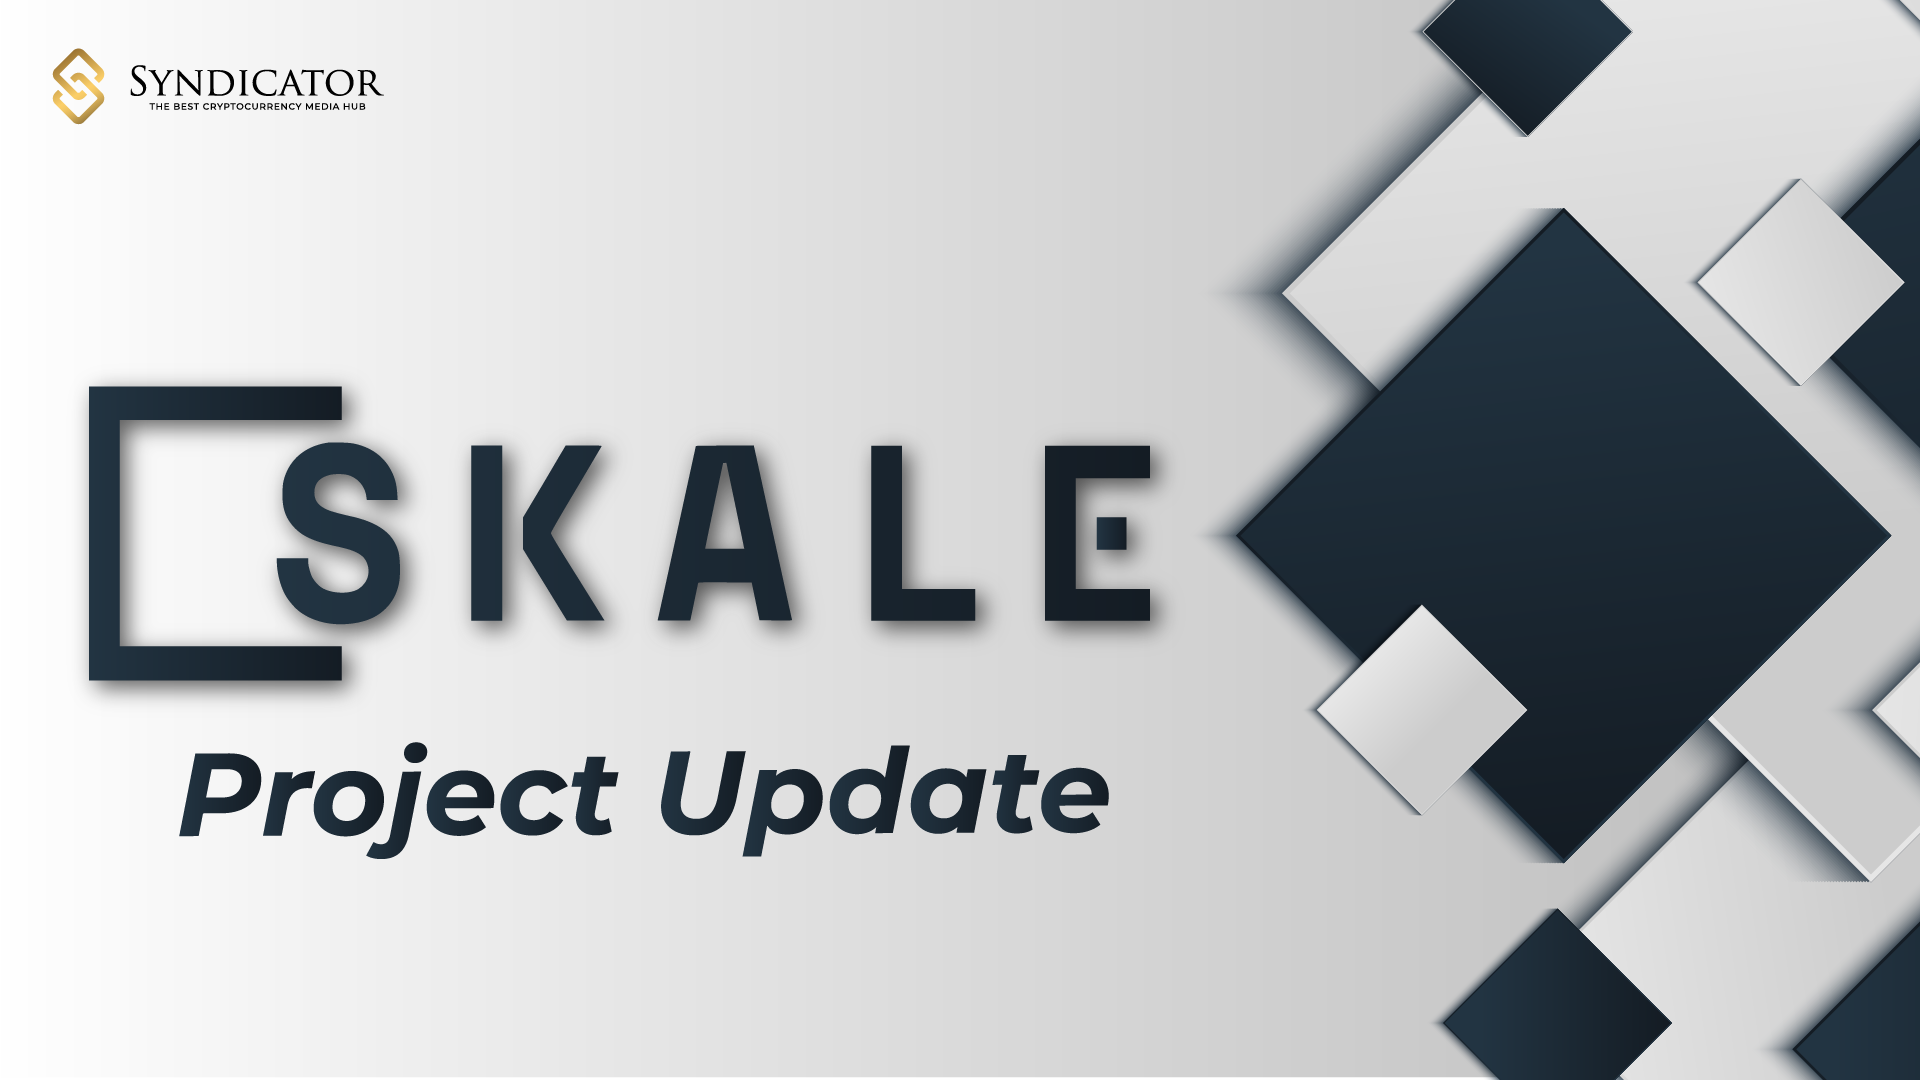 Project Updates (Skale Network) - Syndicator